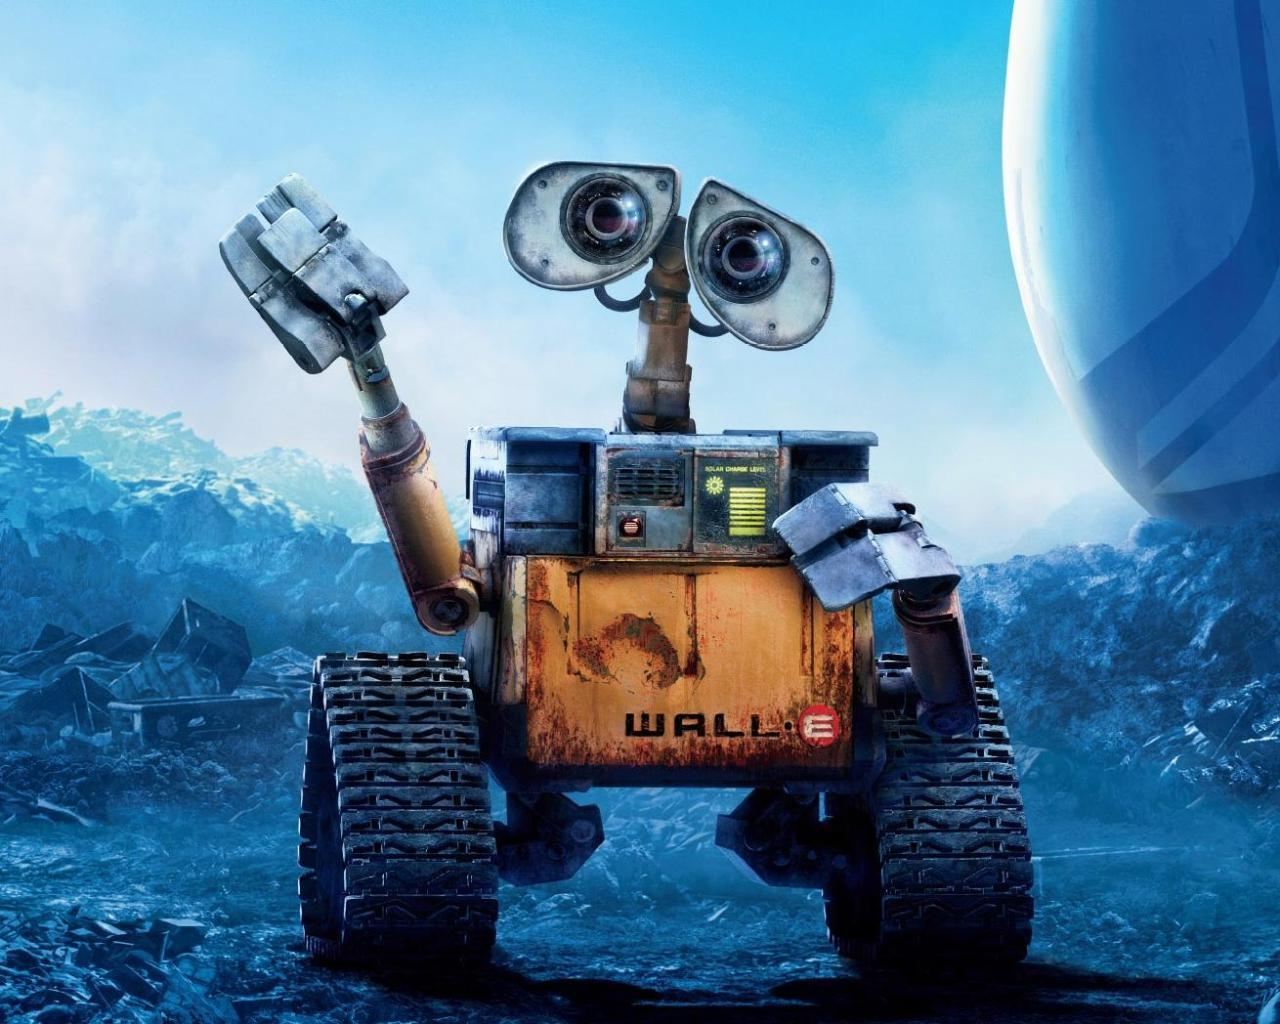 wallpaper wall e picture